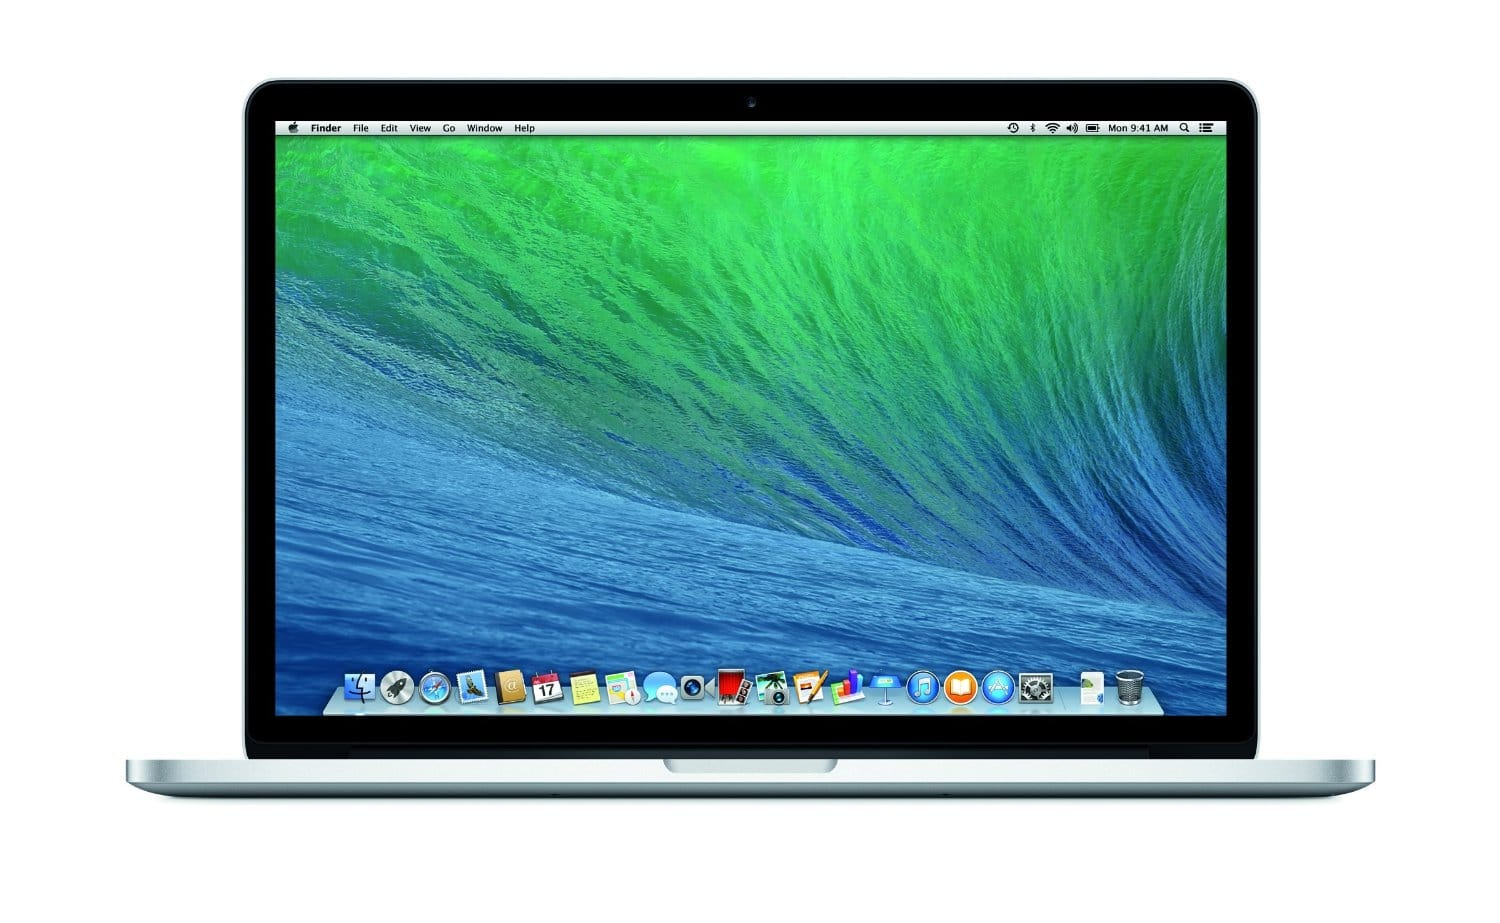 Apple MacBook Pro 15-inch with Retina Display - Best Laptop for College Students 2015